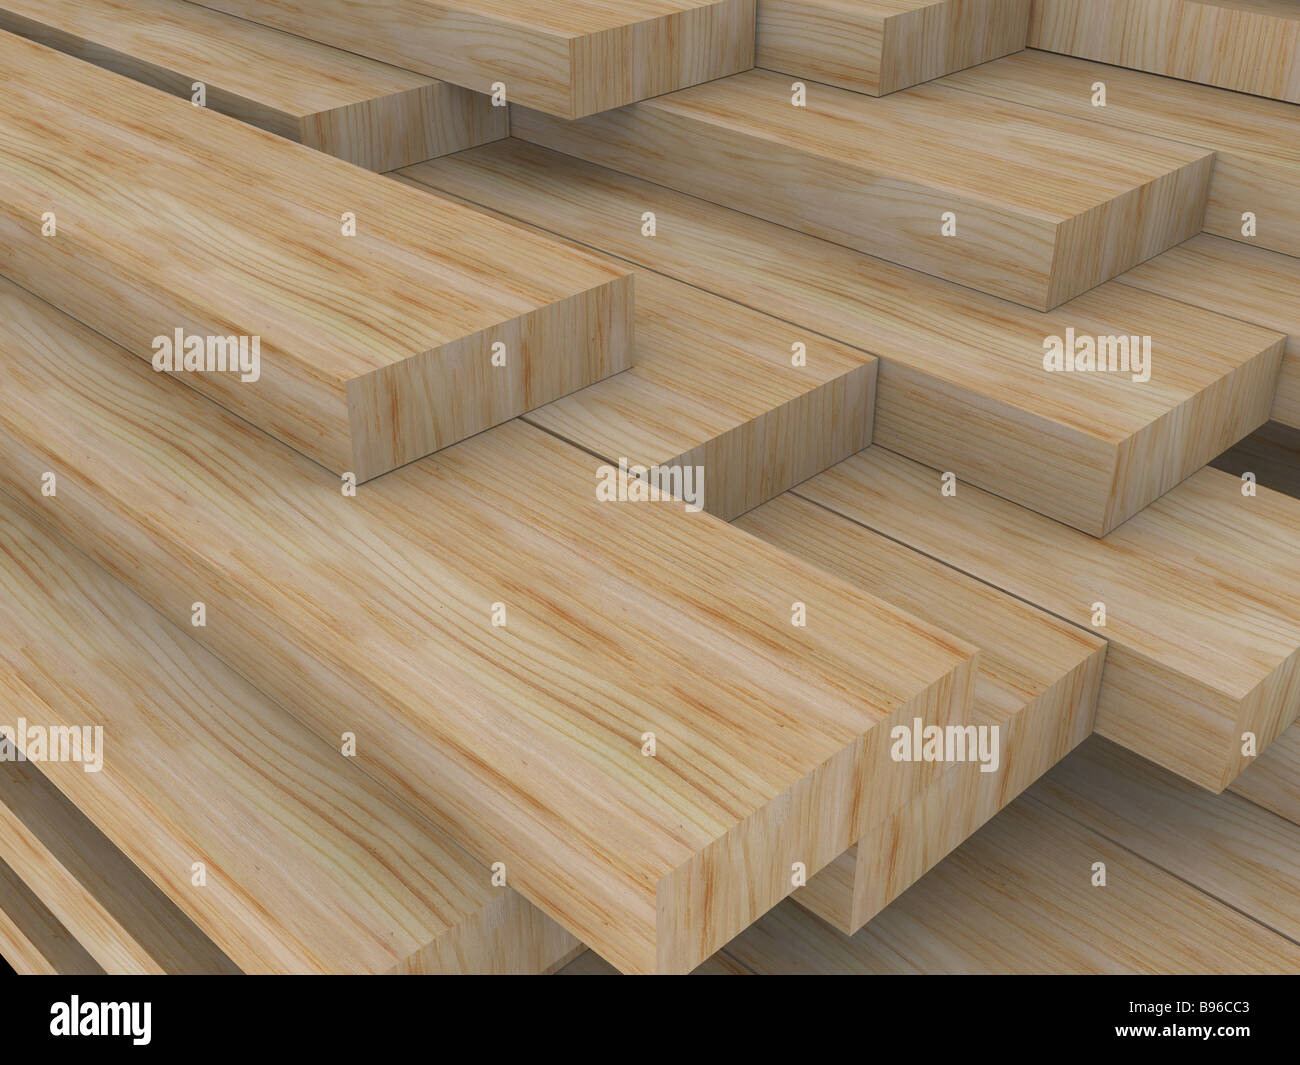 planches de bois Photo Stock